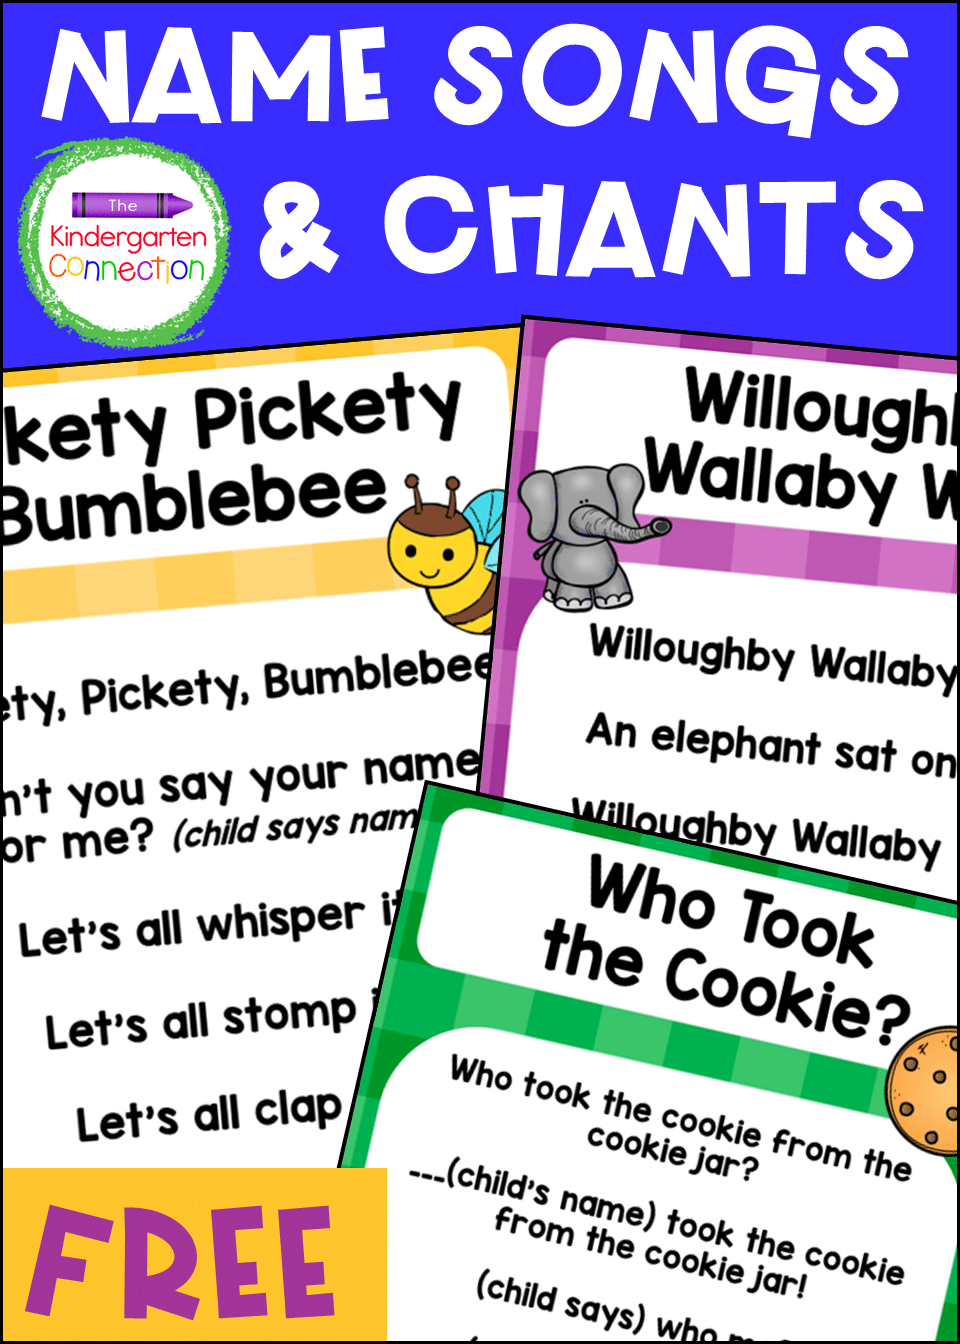 These FREE Name Chants and Songs for Pre-K & Kindergarten are sure to have your students excited to practice important skills like rhyming!